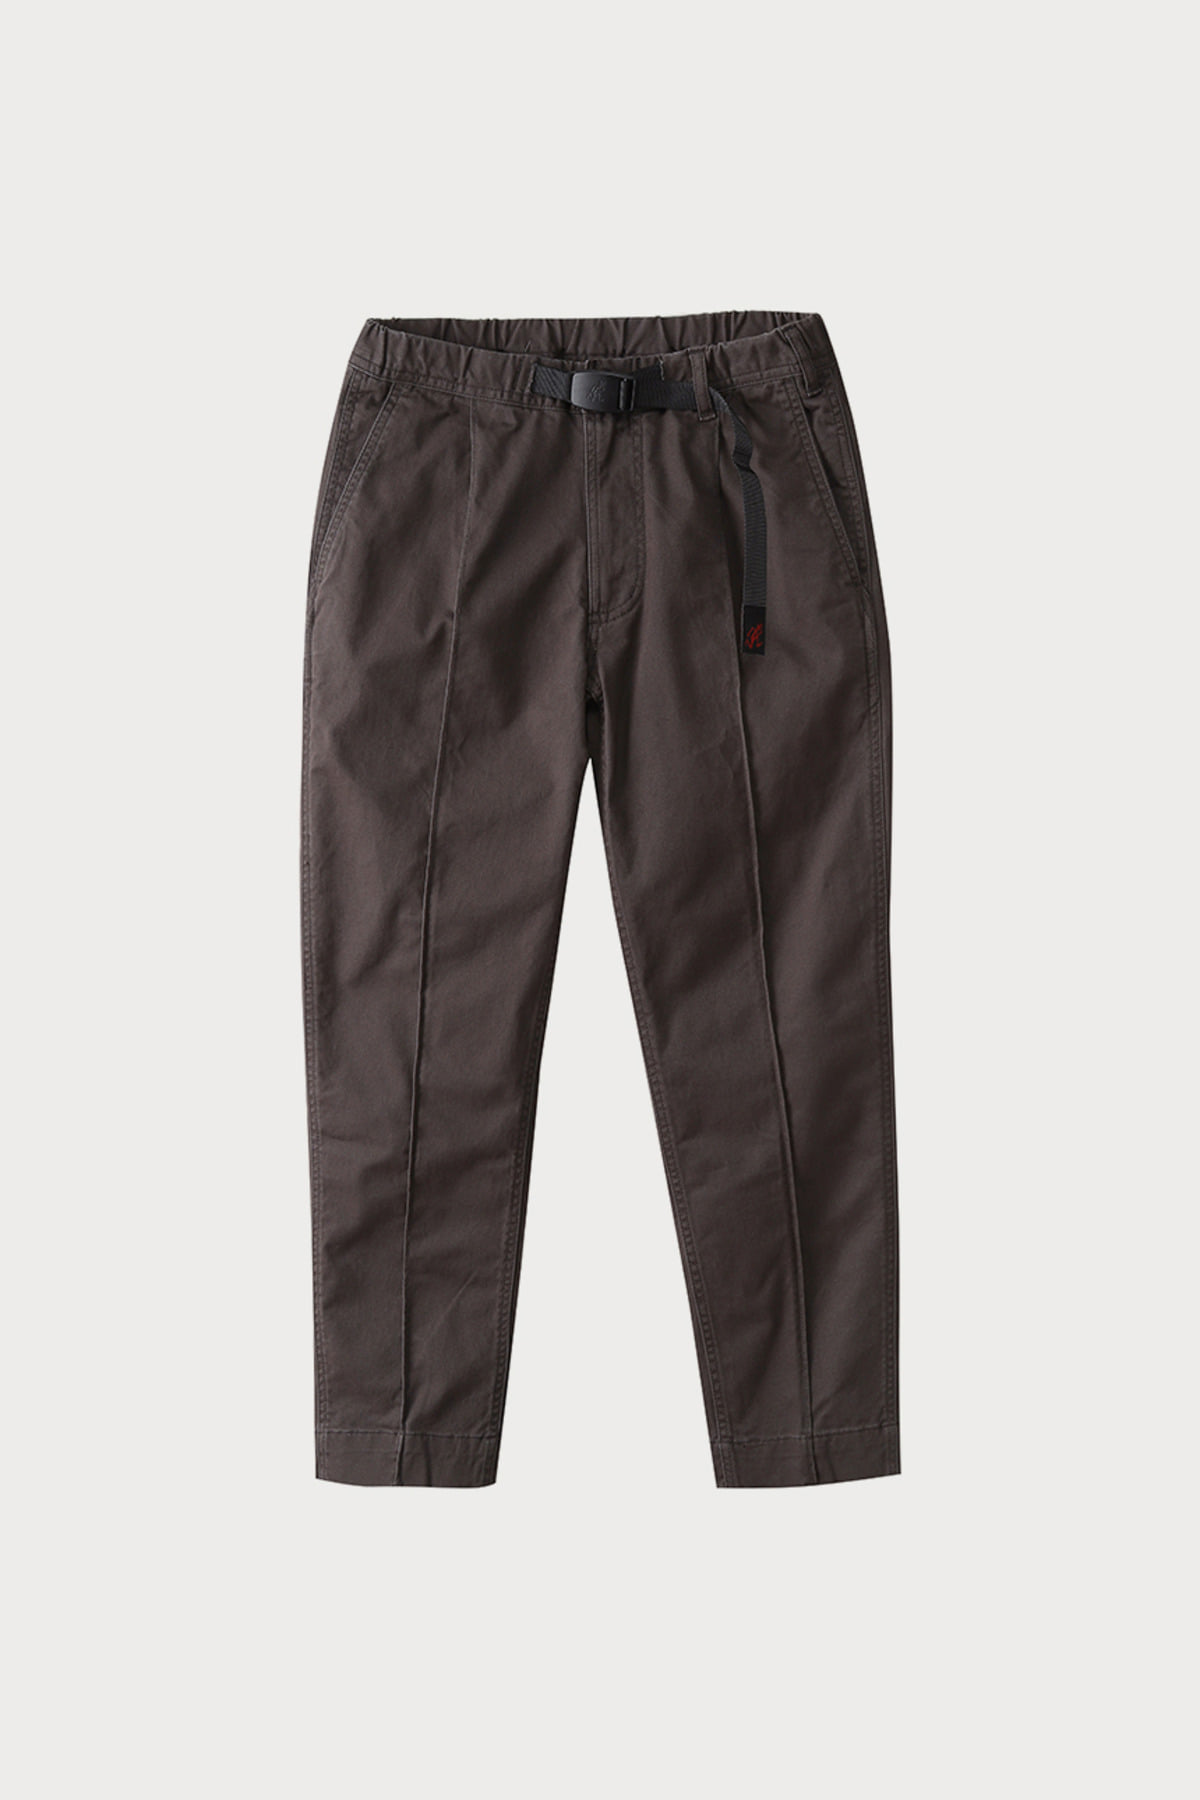 PINTUCK PANTS DARK BROWN